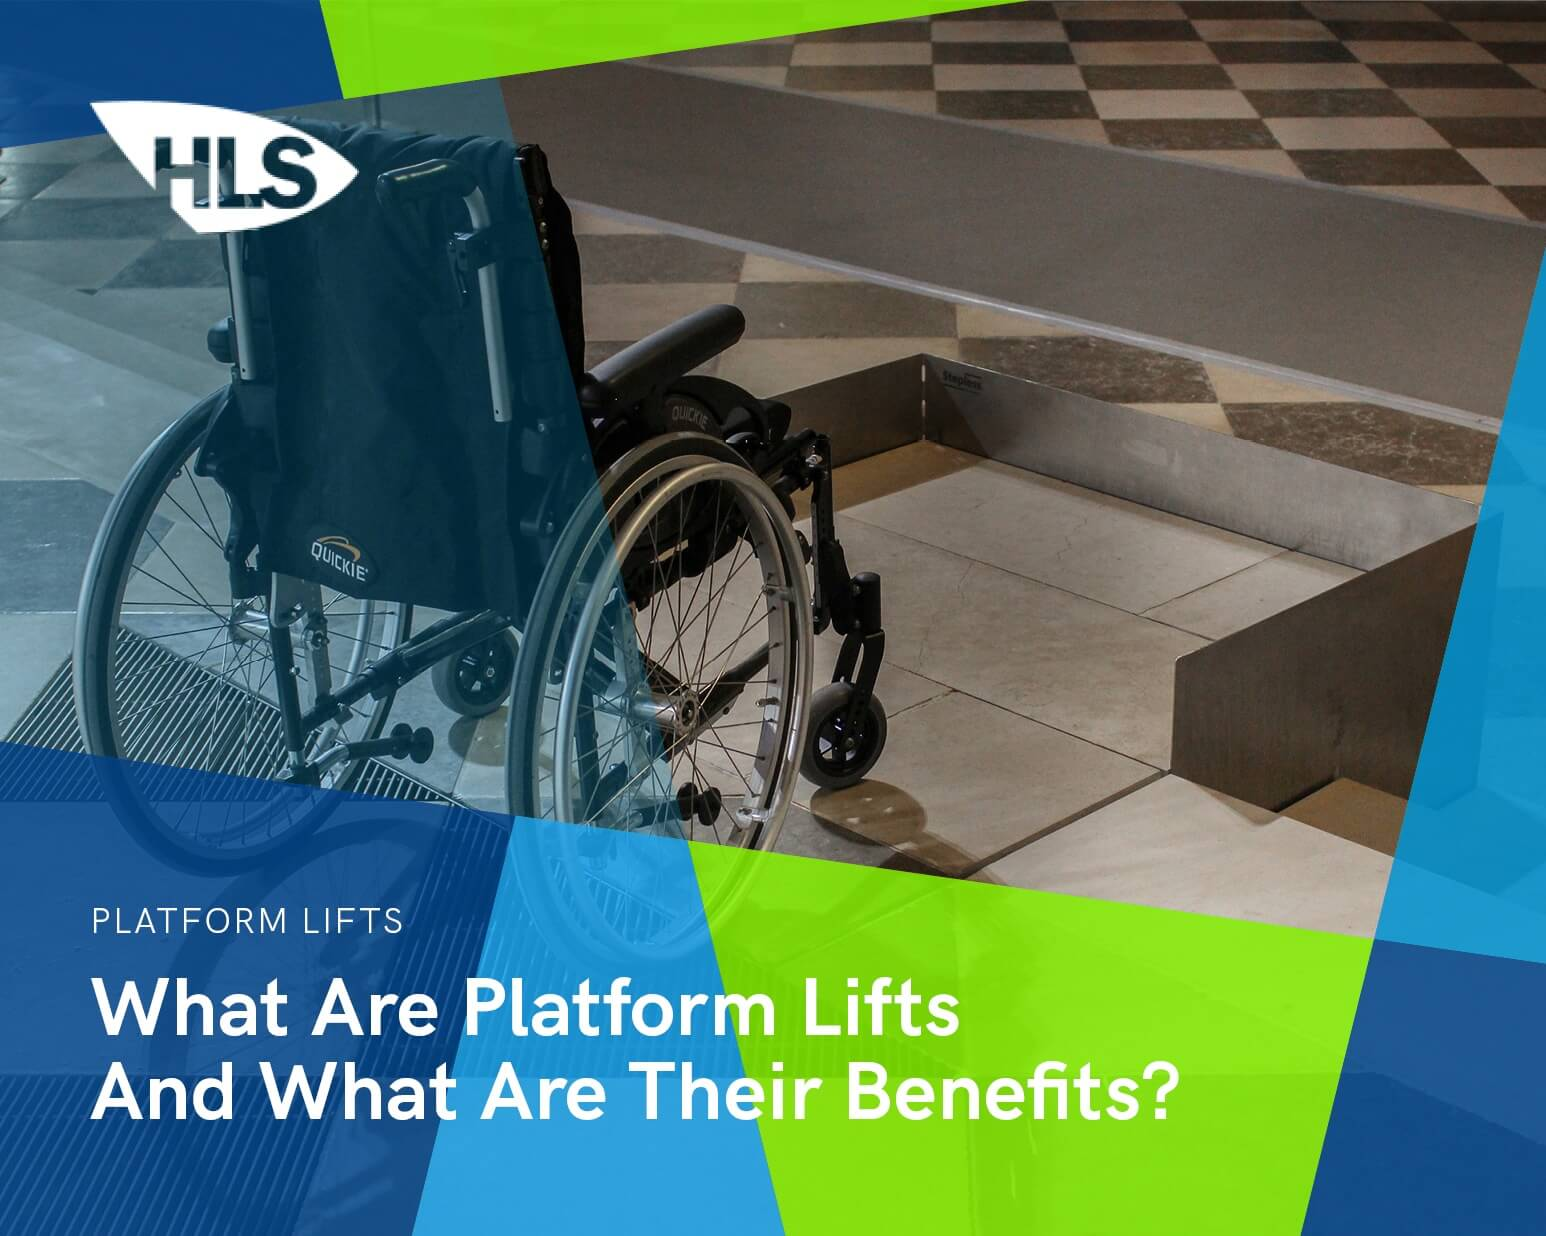 What are Platform Lifts, and What are Their Benefits?